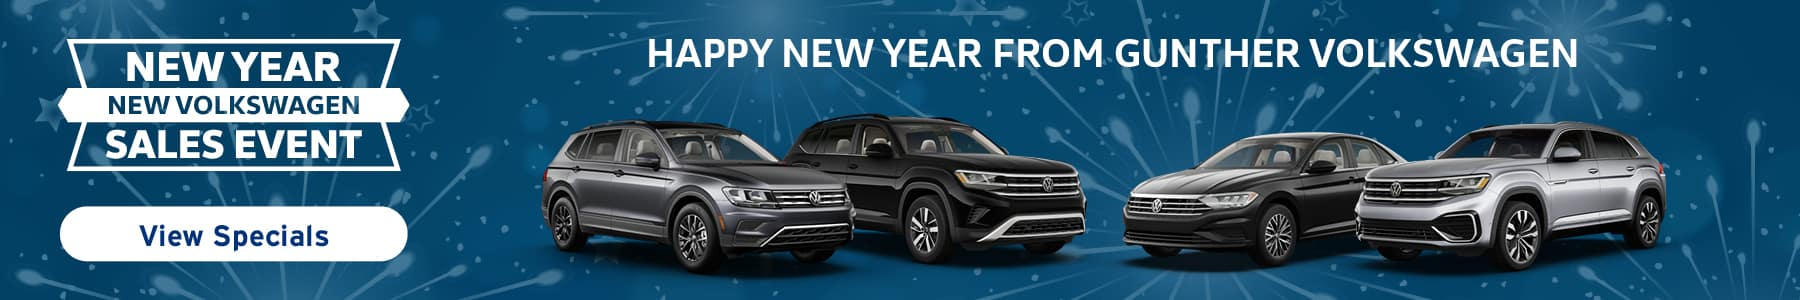 New year, new Volkswagen sales even. Happy new year from Gunther Volkswagen!